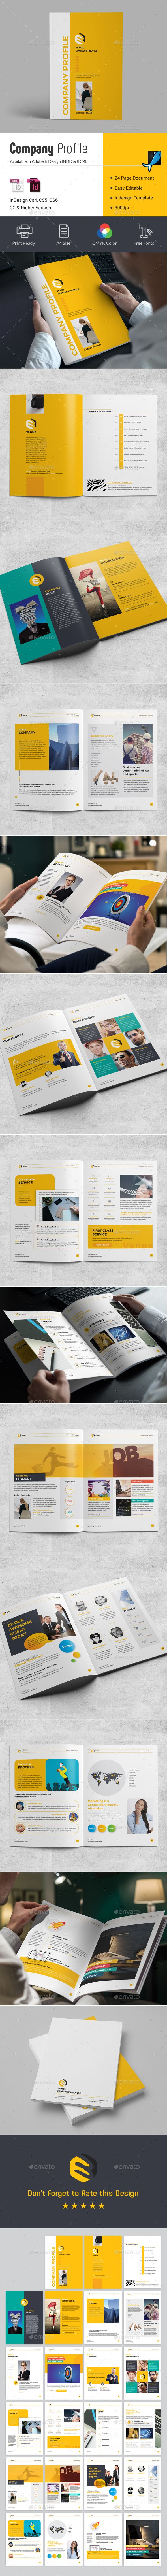 Company Profile #indesign brochure #informational • Download ➝ https://graphicriver.net/item/company-profile/21345777?ref=pxcr